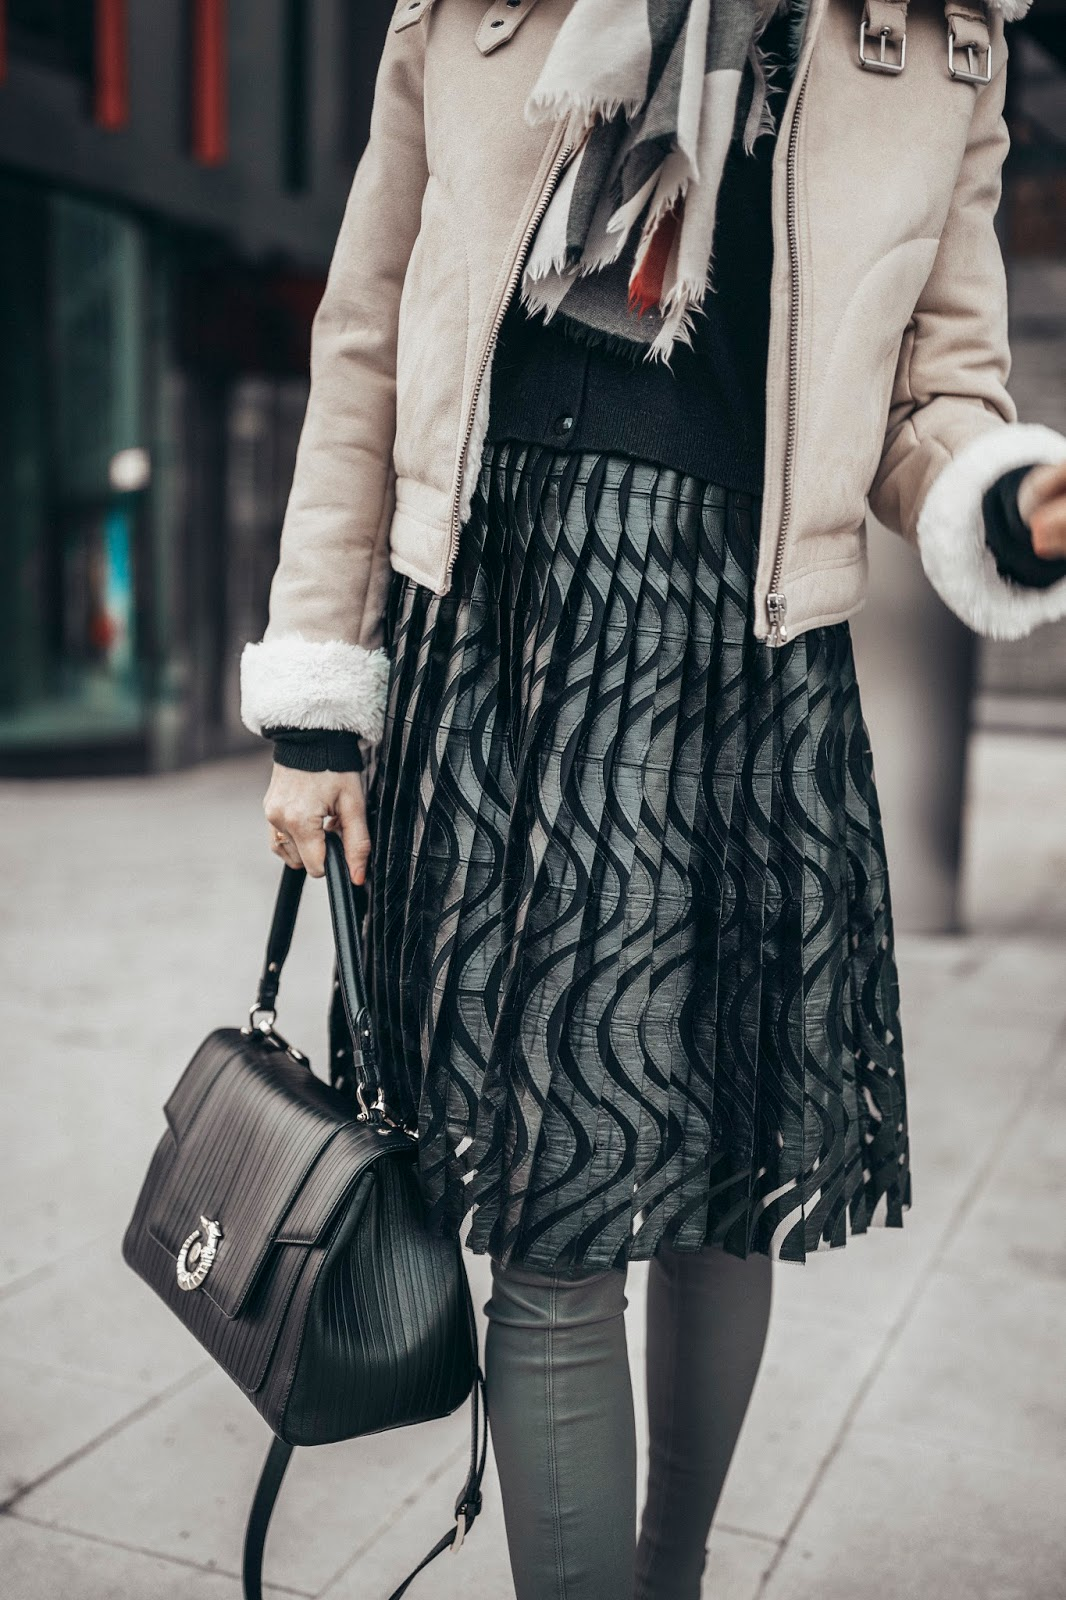 trussardi black pleated midi skirt outfit